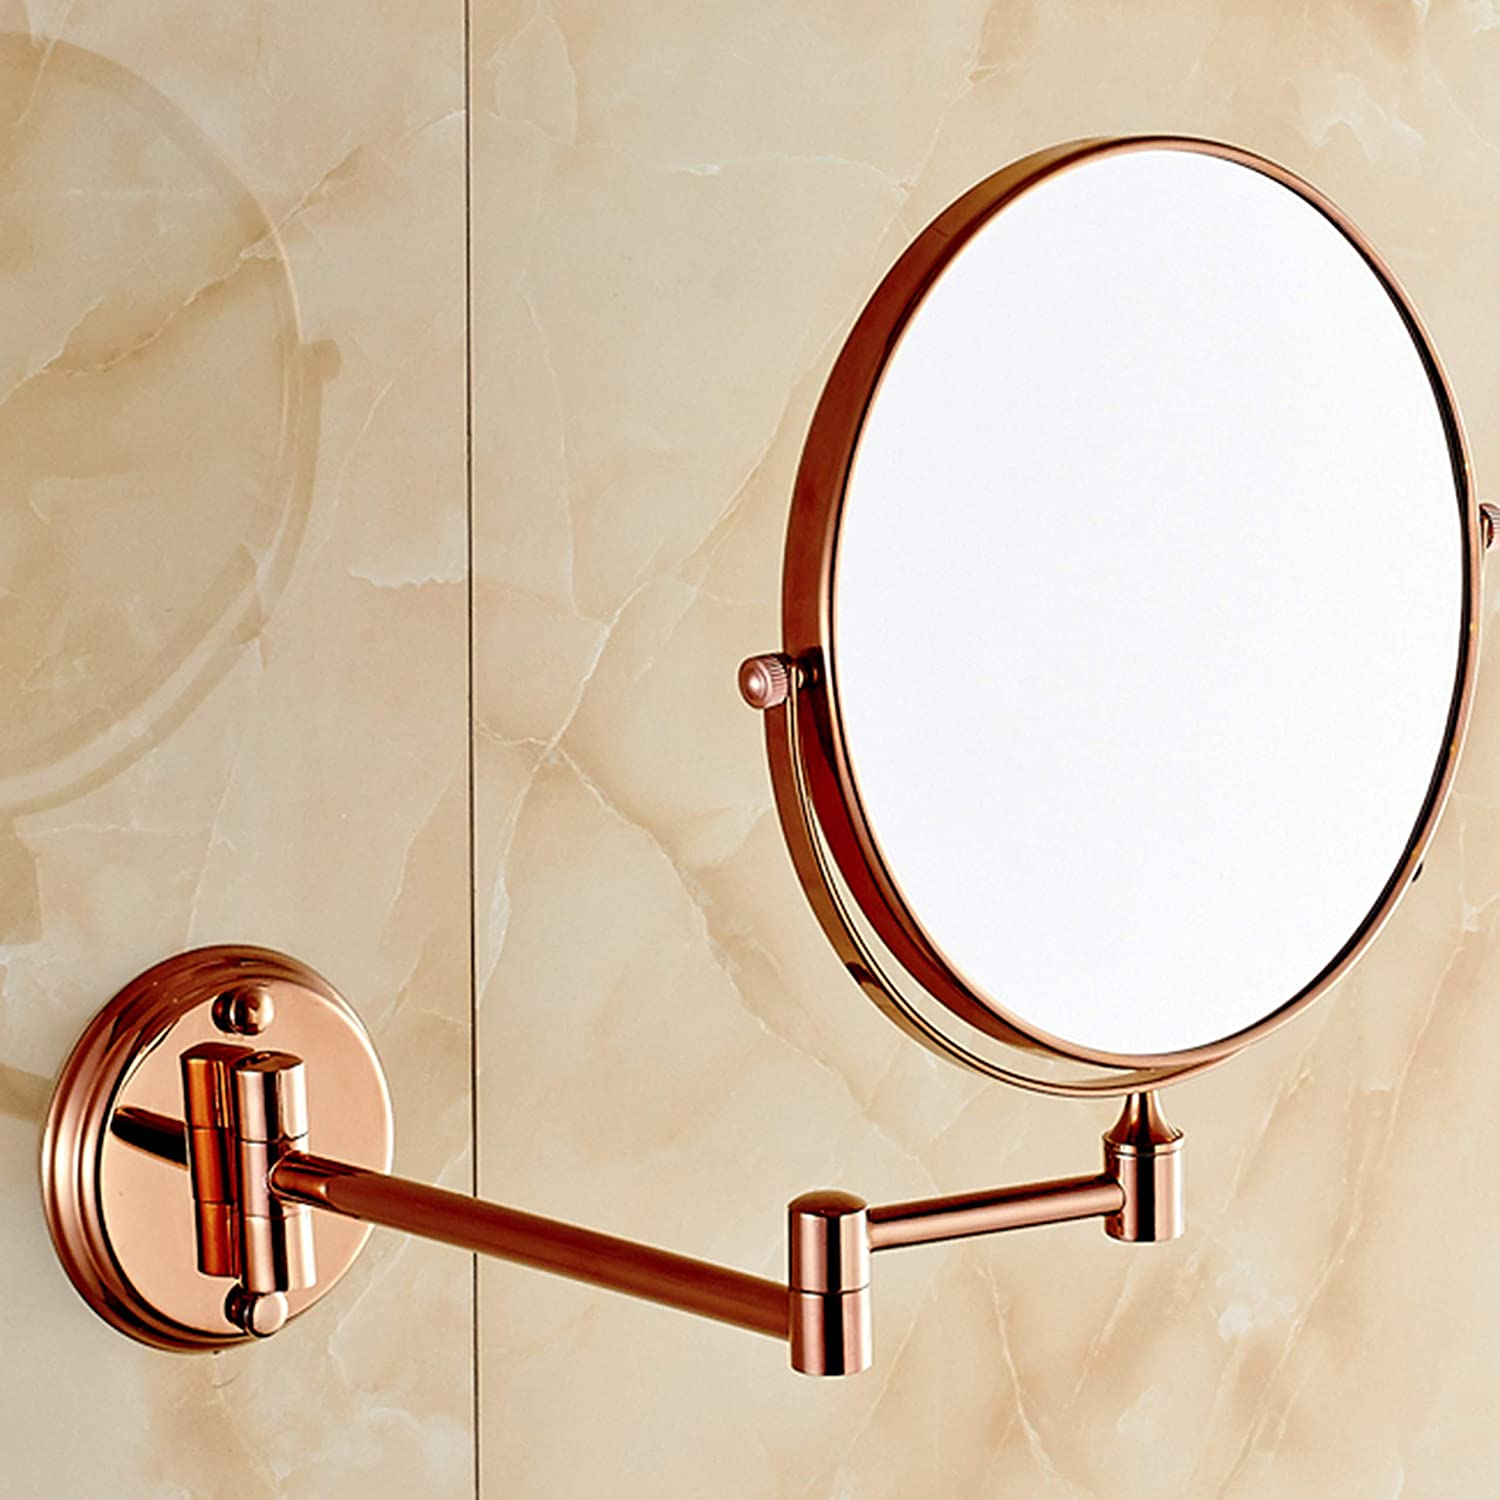 Metal Round Mirror 8 inches Double Sided Beauty Mirror European Style Wall Mount pink gold Fold Adjustable Bathroom Makeup Mirror,8inch